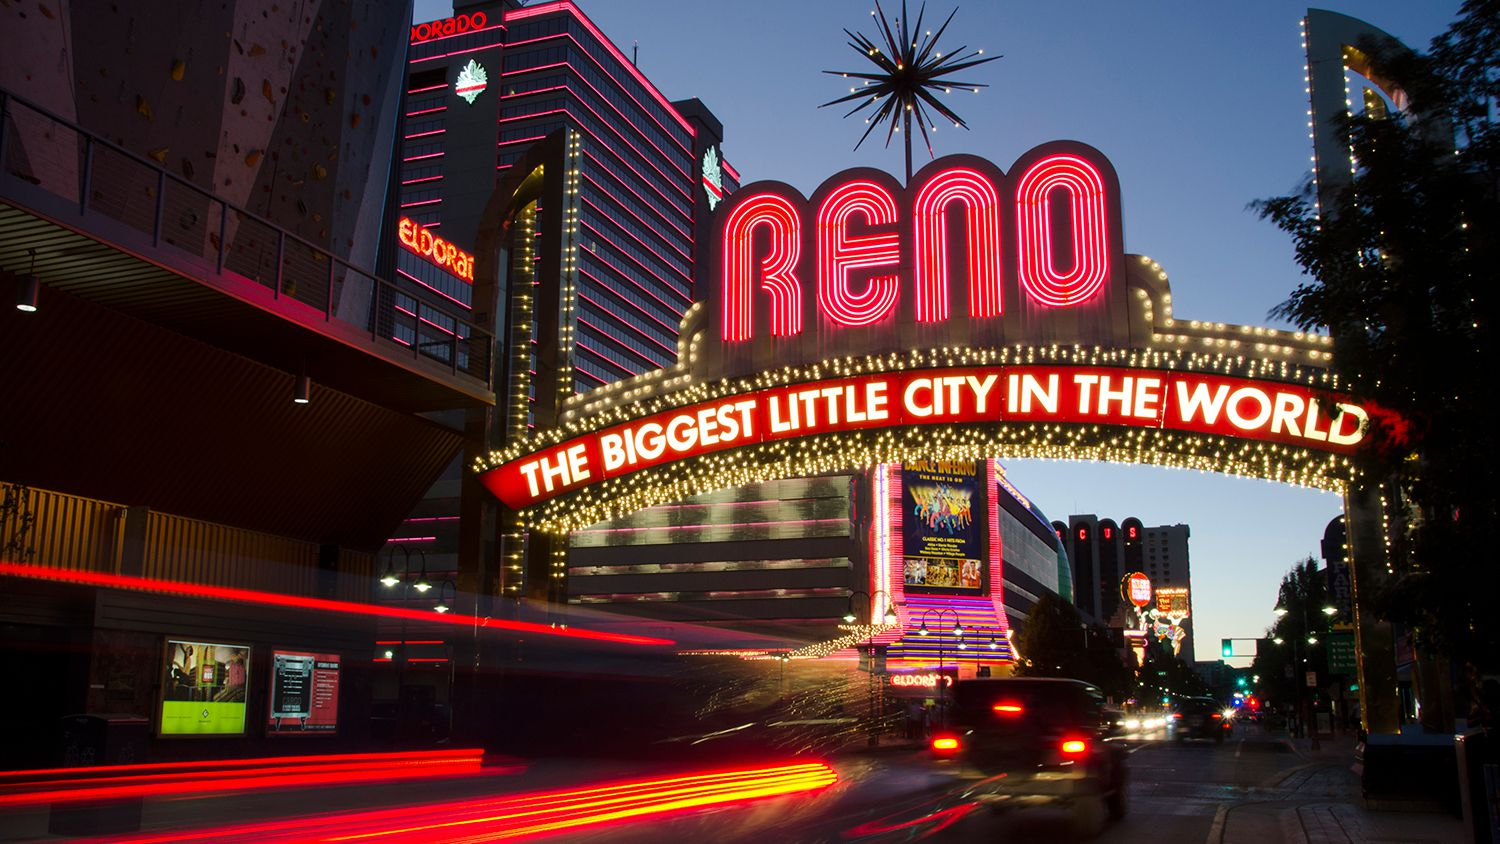 Boomtown casino reno phone number official site